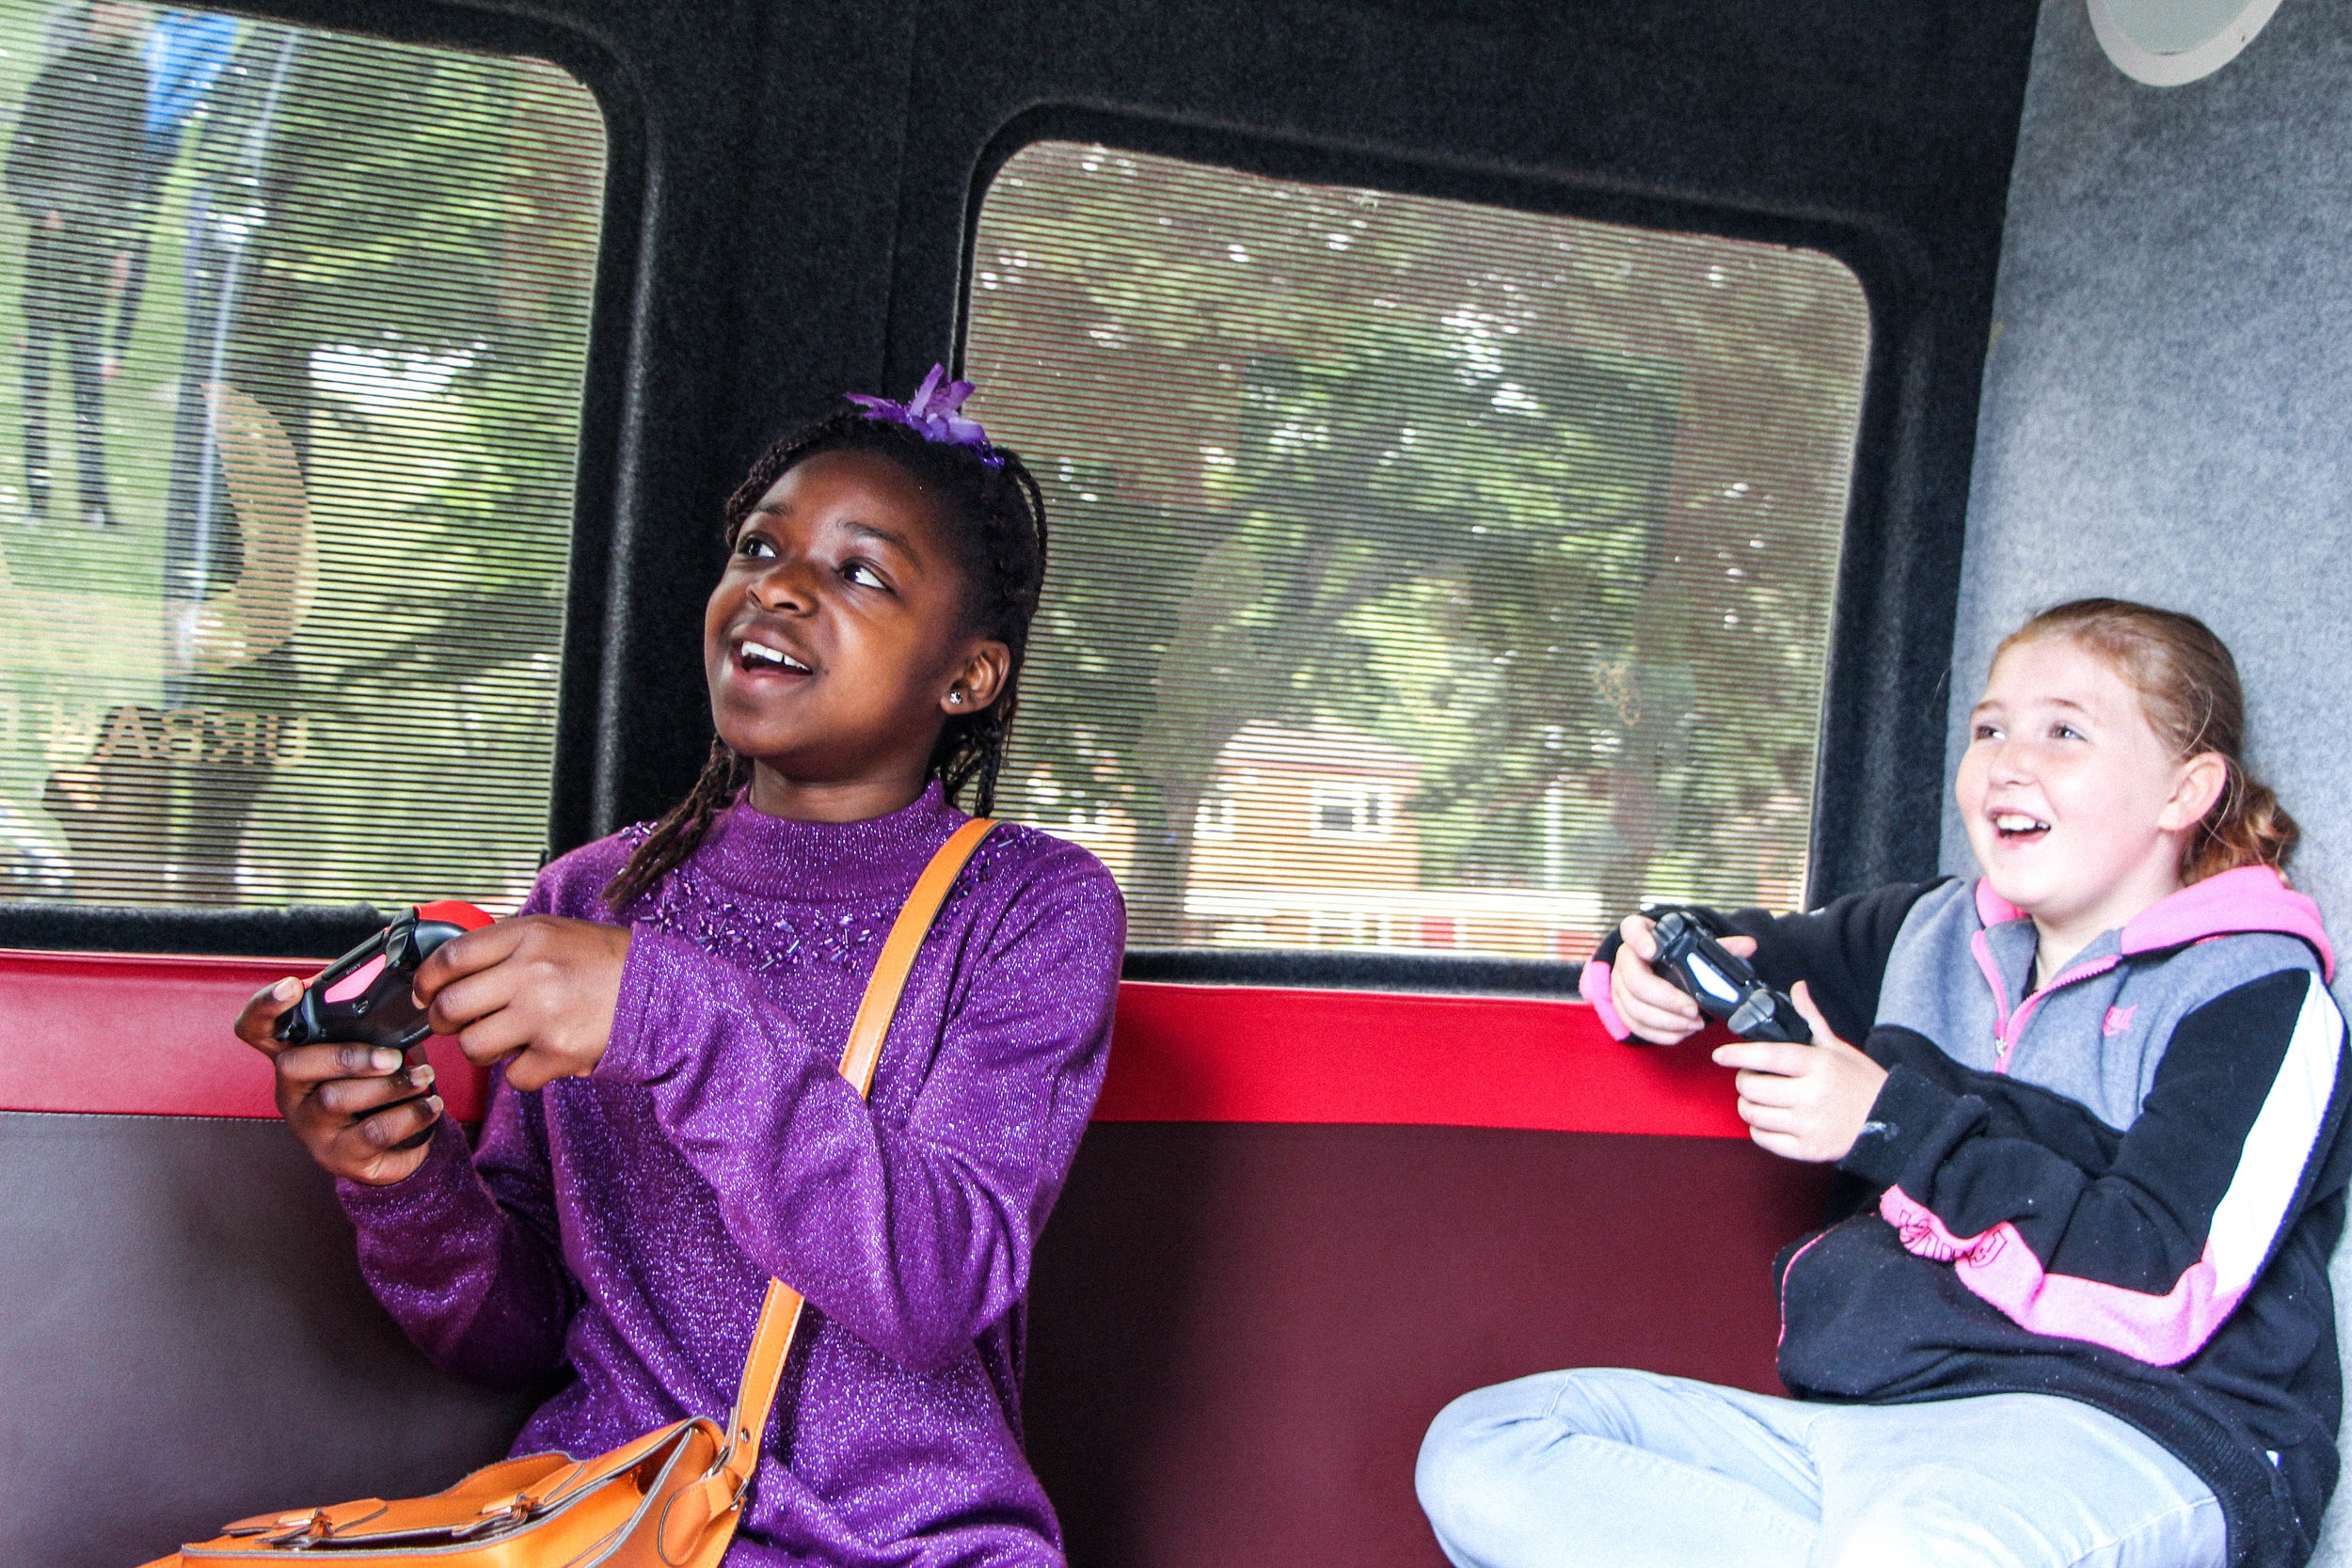 - We believe that everyone has enormous value and we want to help remove the obstacles that prevent potential from being realised. People's postcodes should not determine their possibilities. We build relationships with children, young people and families to help make our local neighbourhoods places that local people are proud to call home.